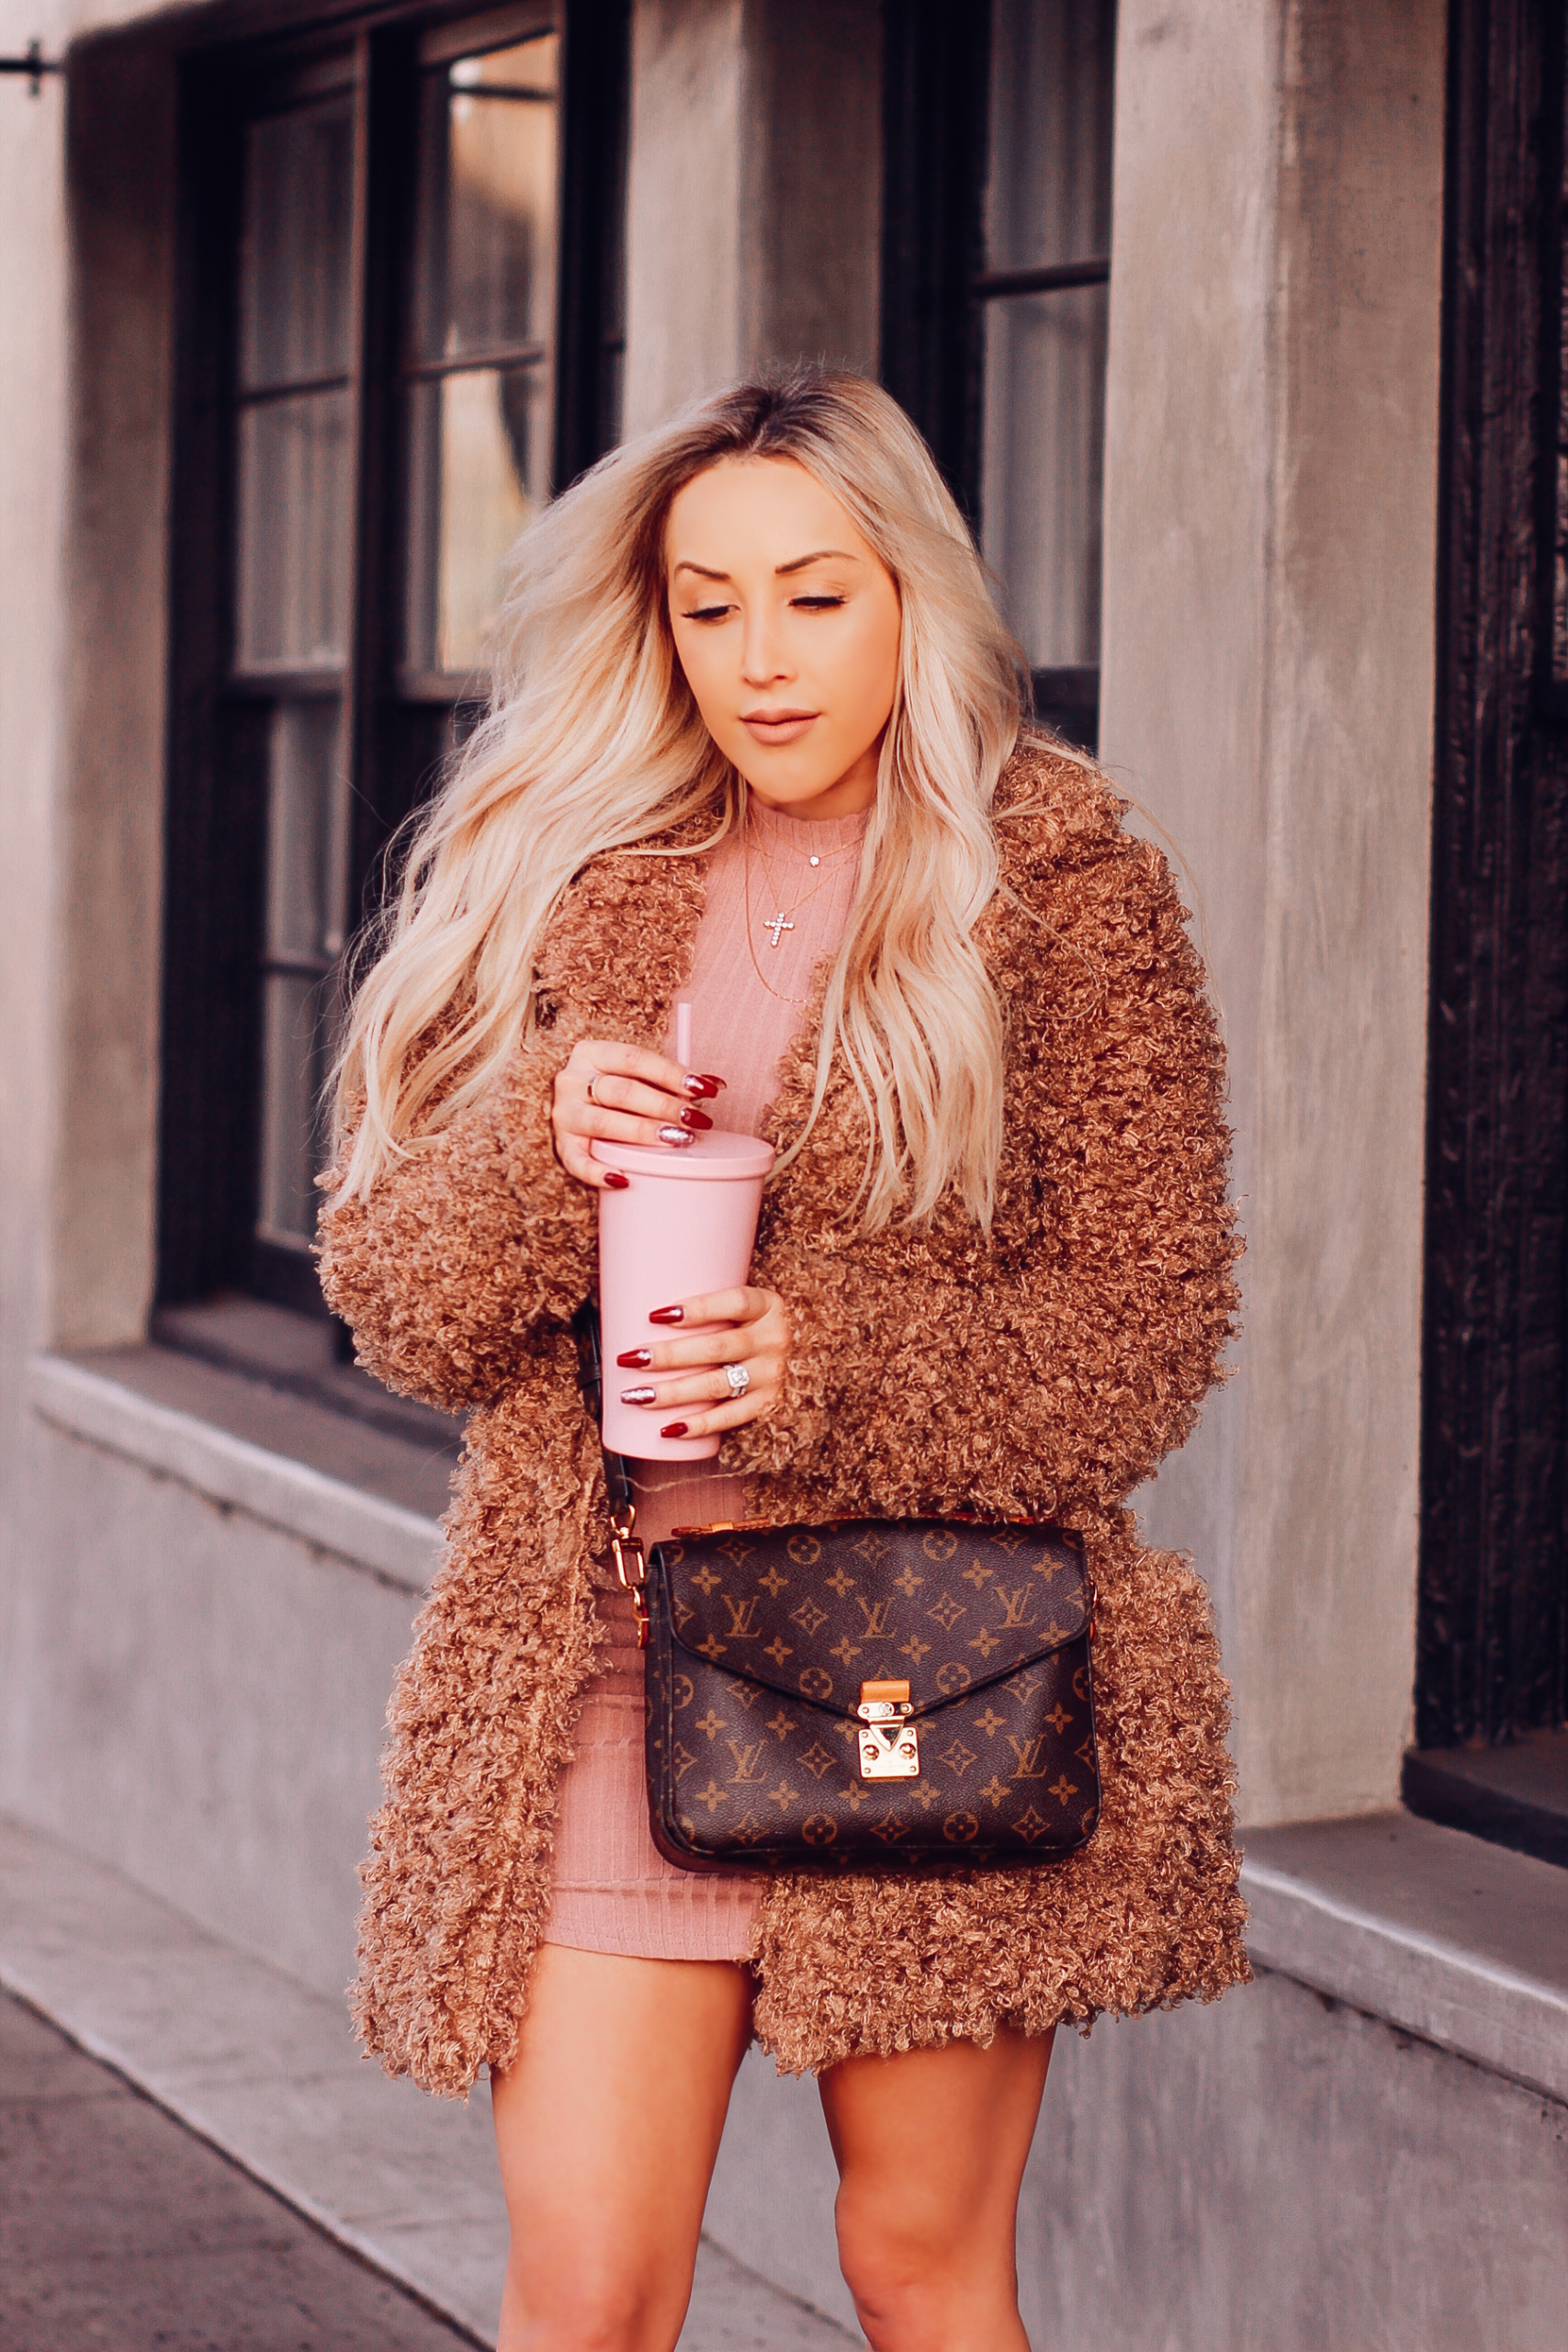 Pink Bodycon Dress, Mauve Suede Boots | Louis Vuitton Pochette Metis | Blondie in the City